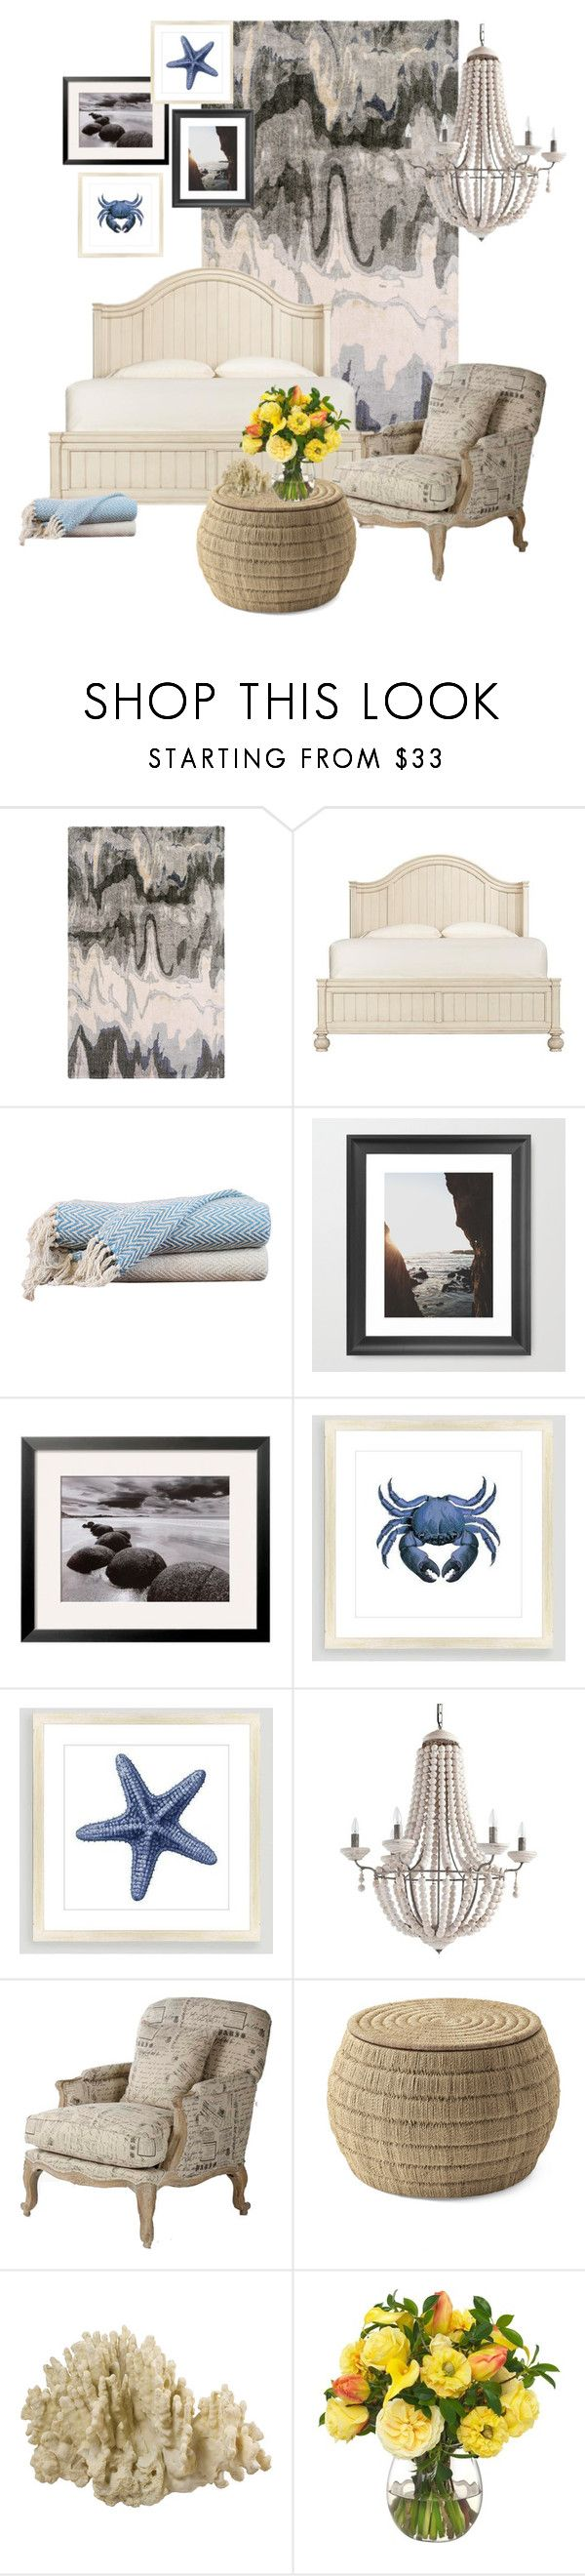 """""""Beachy Interior"""" by johanavigu ❤ liked on Polyvore featuring interior, interiors, interior design, home, home decor, interior decorating, Dot & Bo, Home Decorators Collection, Amrapur and Cost Plus World Market"""